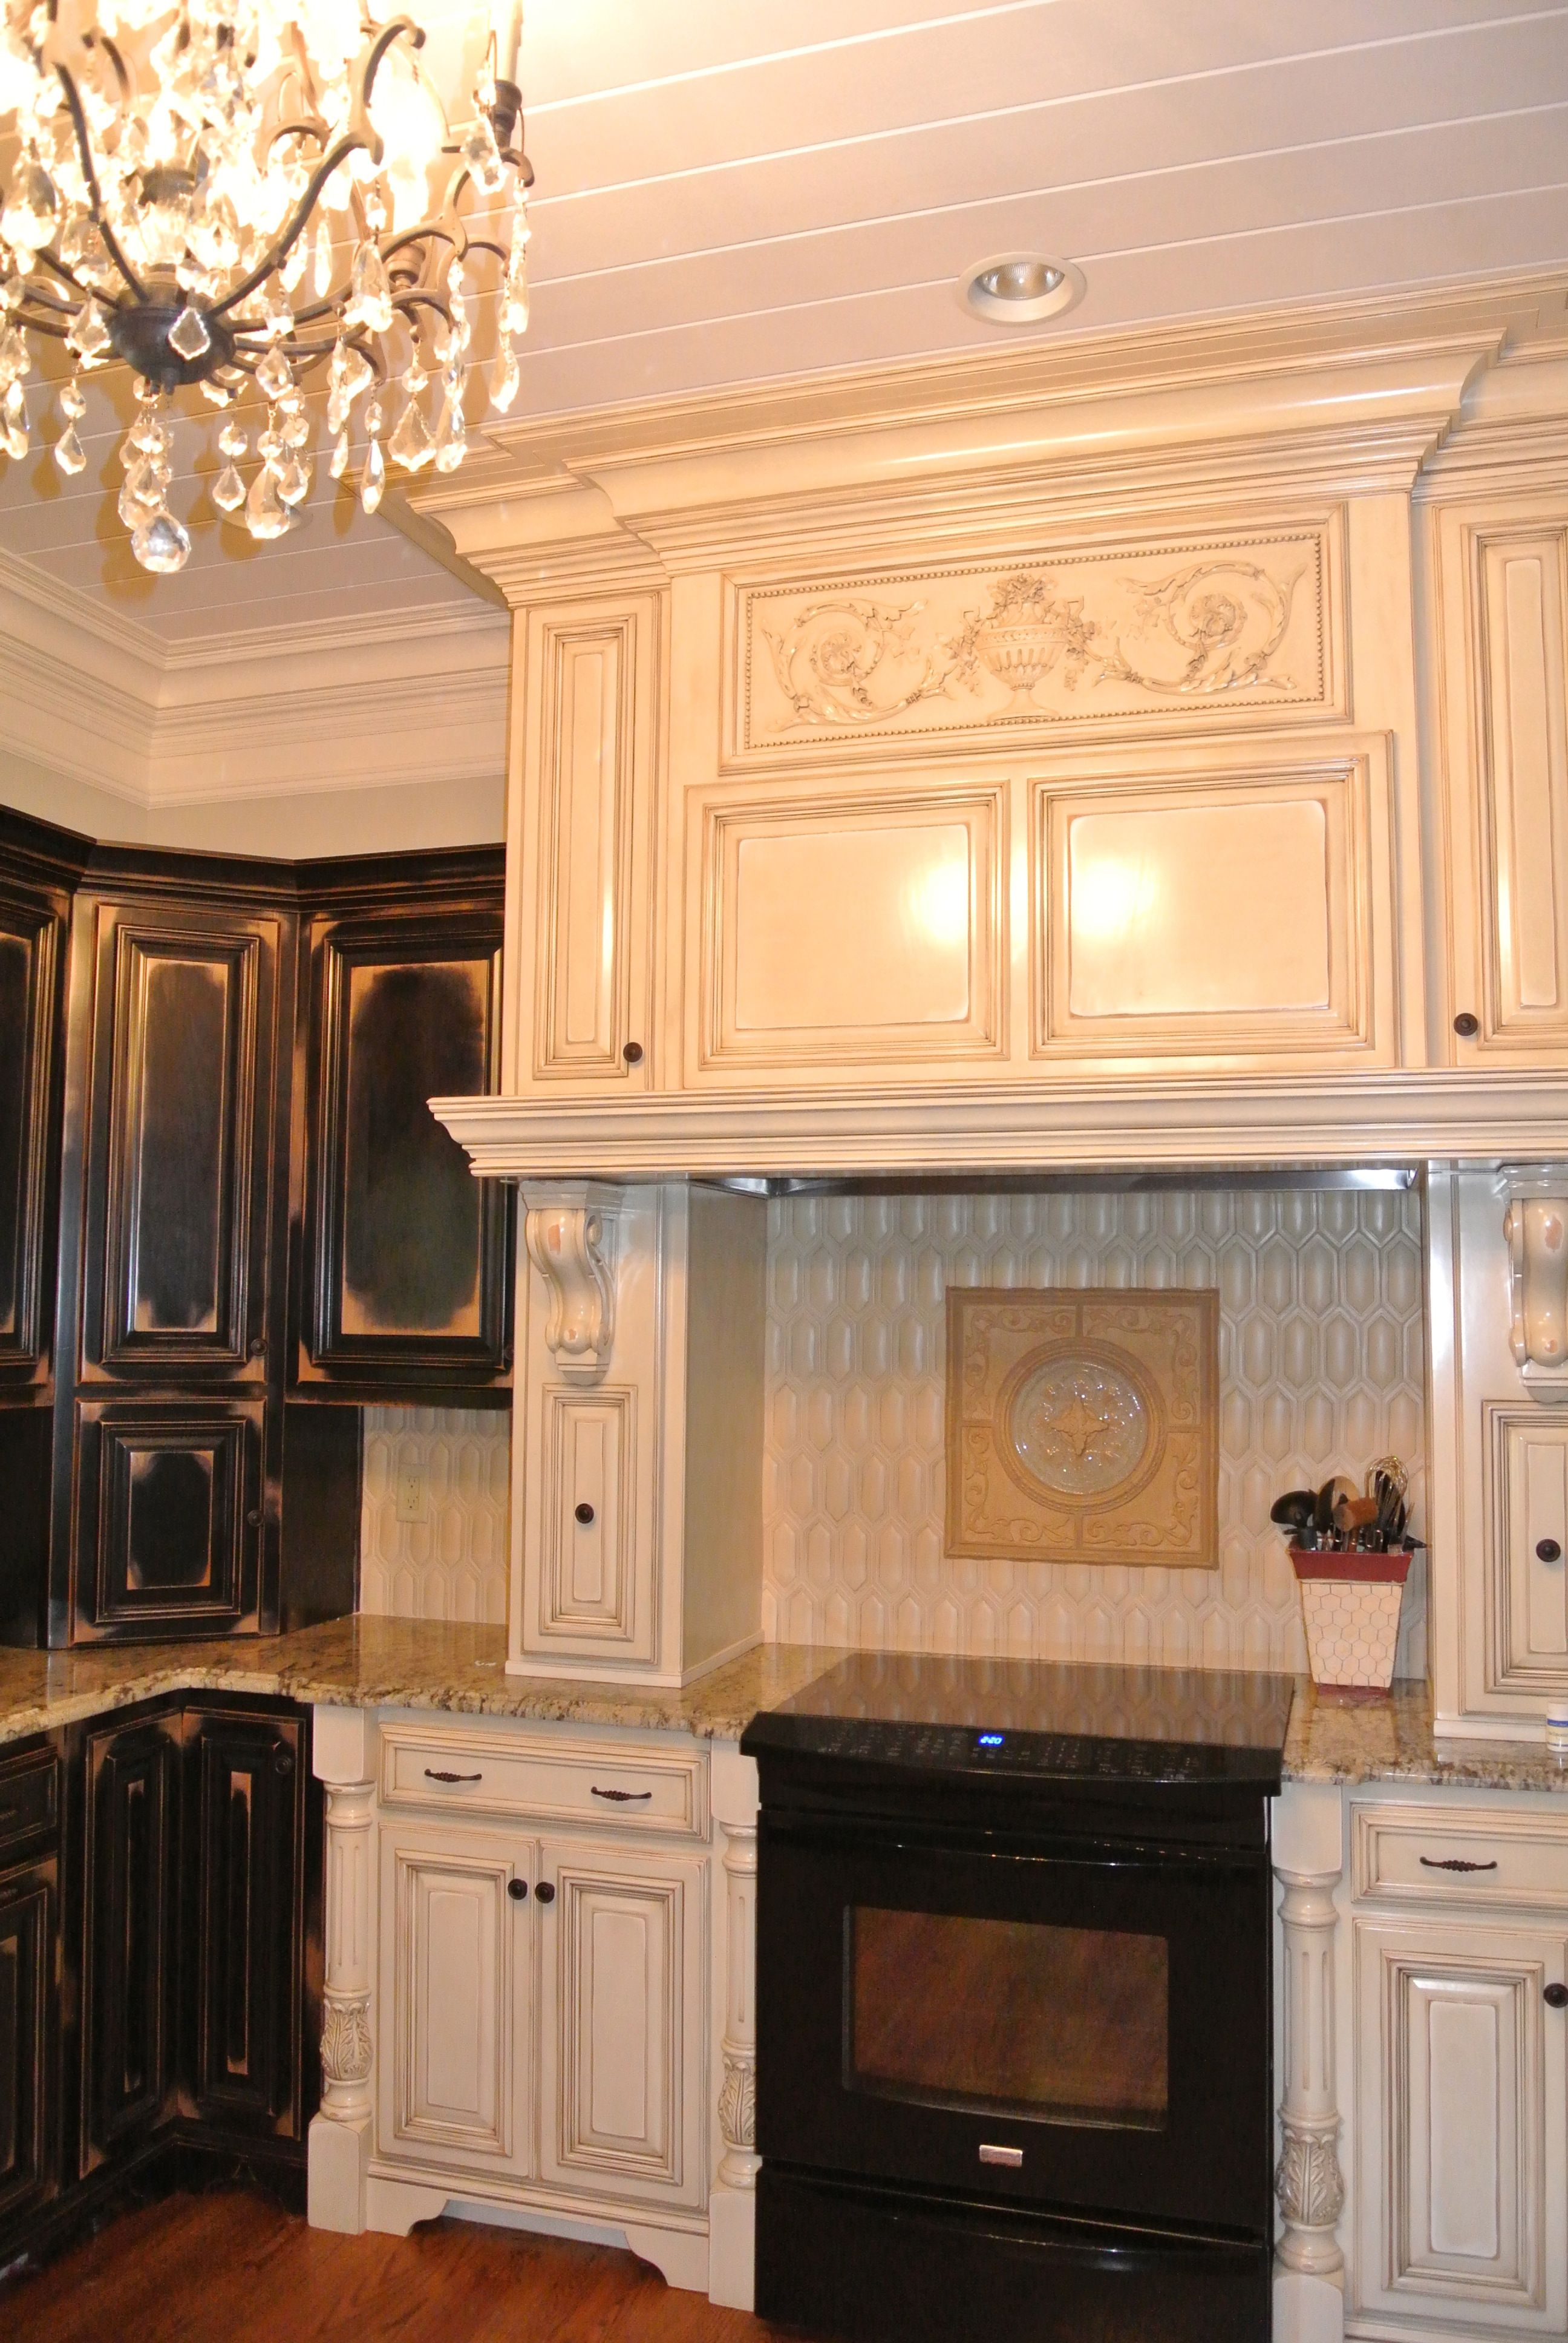 French Country Kitchen Mantel Over Stove Rustic Cabinets